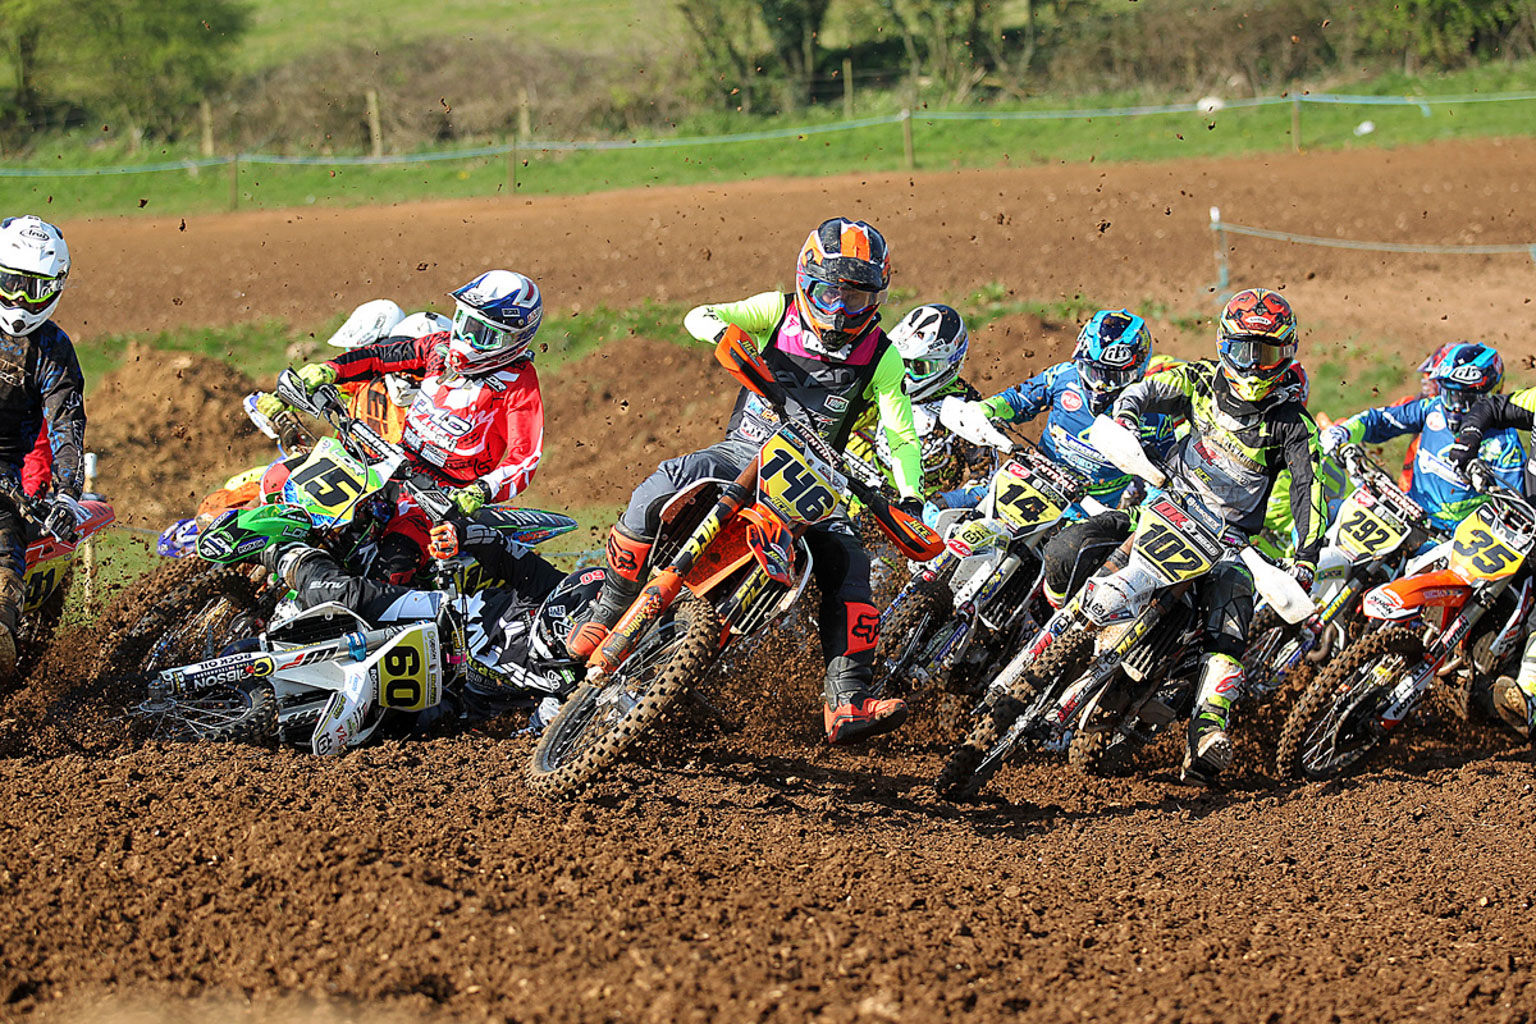 Ryan-Crowder146-grabs-the-first-MX1-holeshot-of-2017-as-Arran-Poolman60-crashes